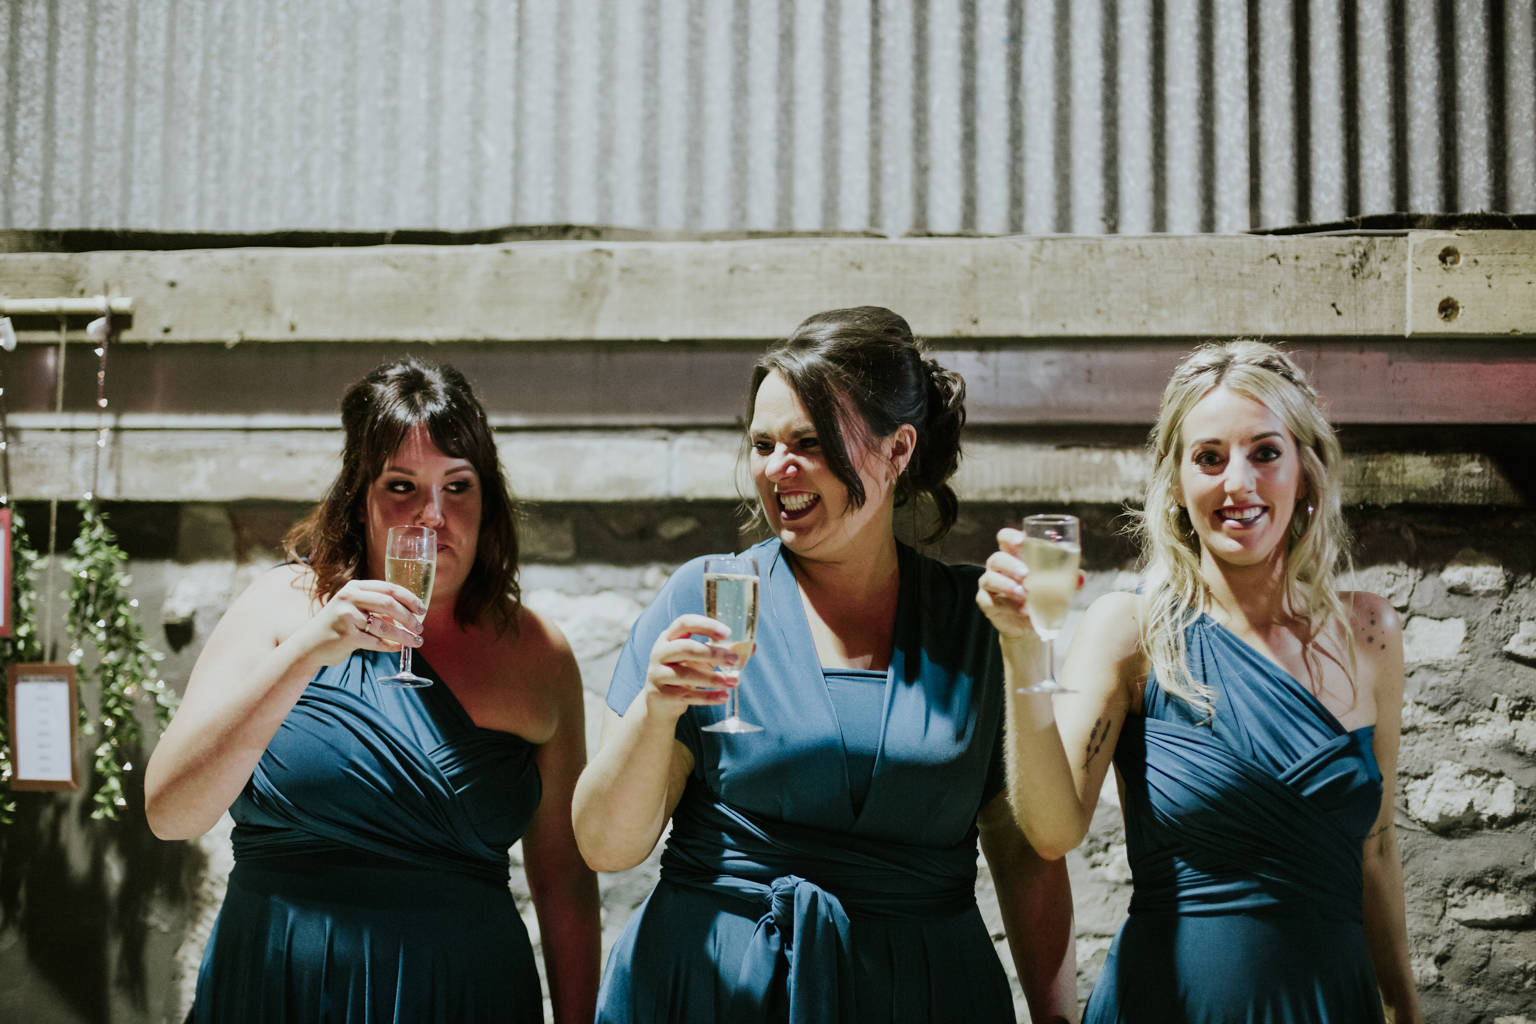 Bridesmaids are standing with smiling faces and champagne glasses at the wedding reception at Harelaw farm DIY wedding.